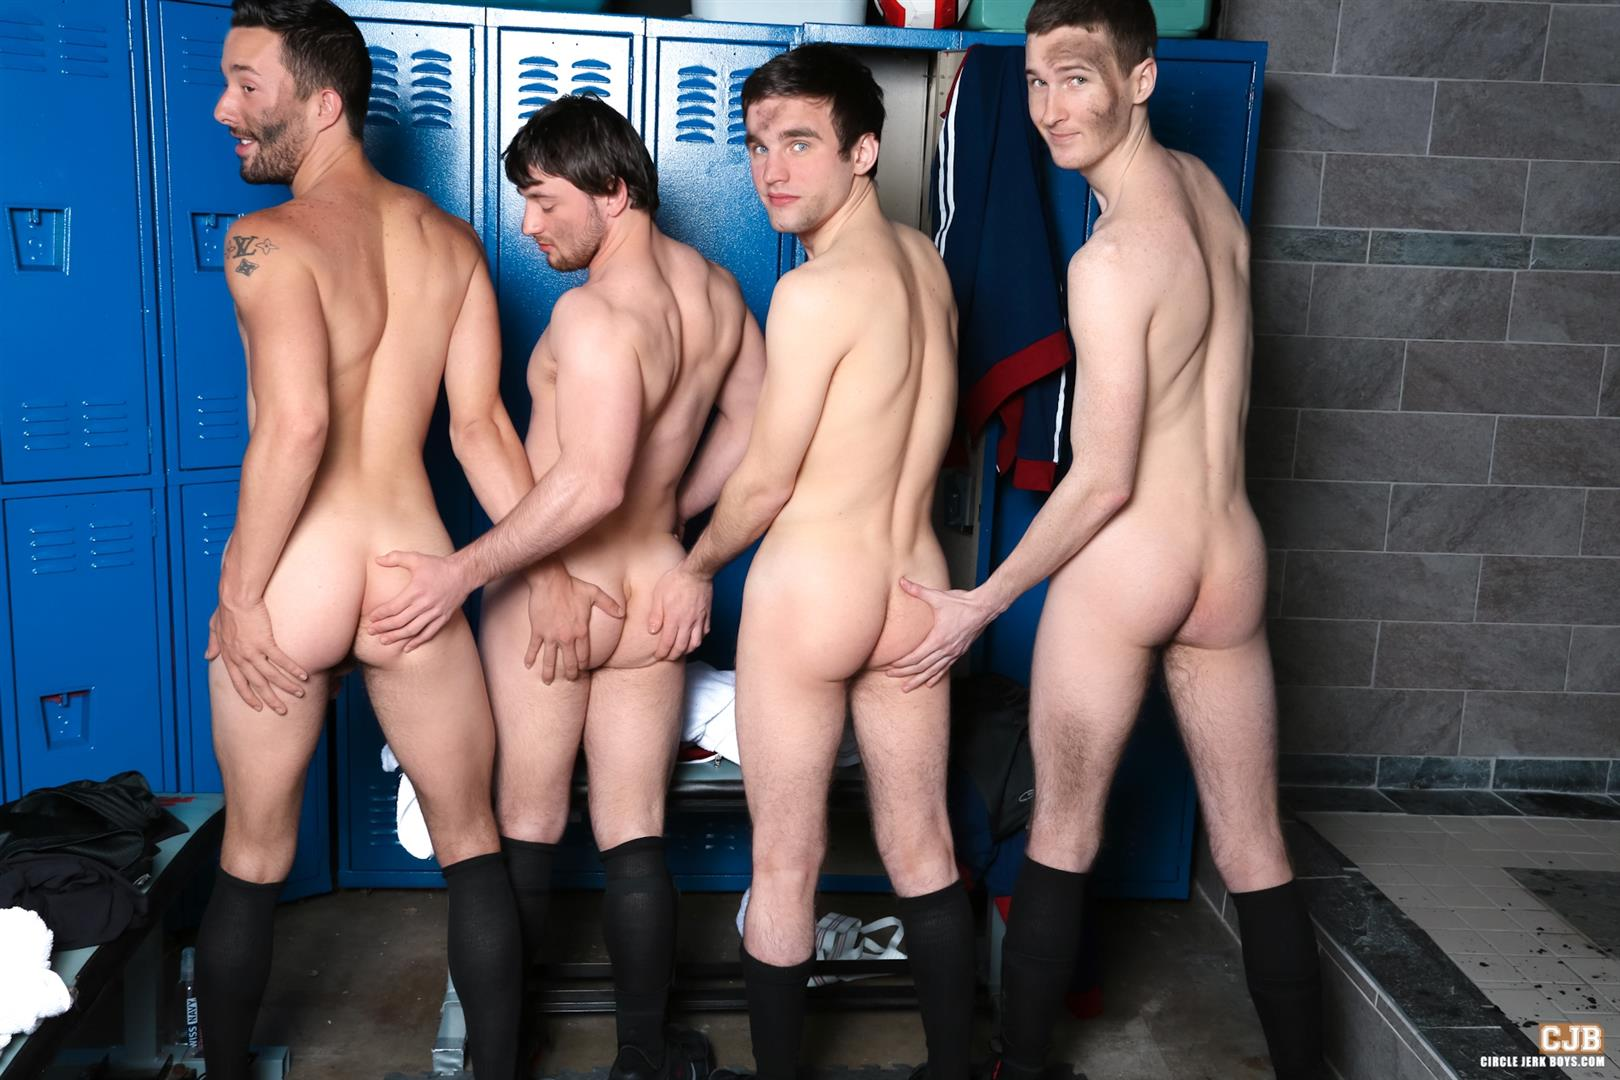 Circle-Jerk-Boys-Andrew-Collins-and-Isaac-Hardy-and-Josh-Pierce-and-Scott-Harbor-Soccer-Guys-Sucking-Cock-Amateur-Gay-Porn-12 After the Game, Soccer Plays Sucking Cock In The Locker Room